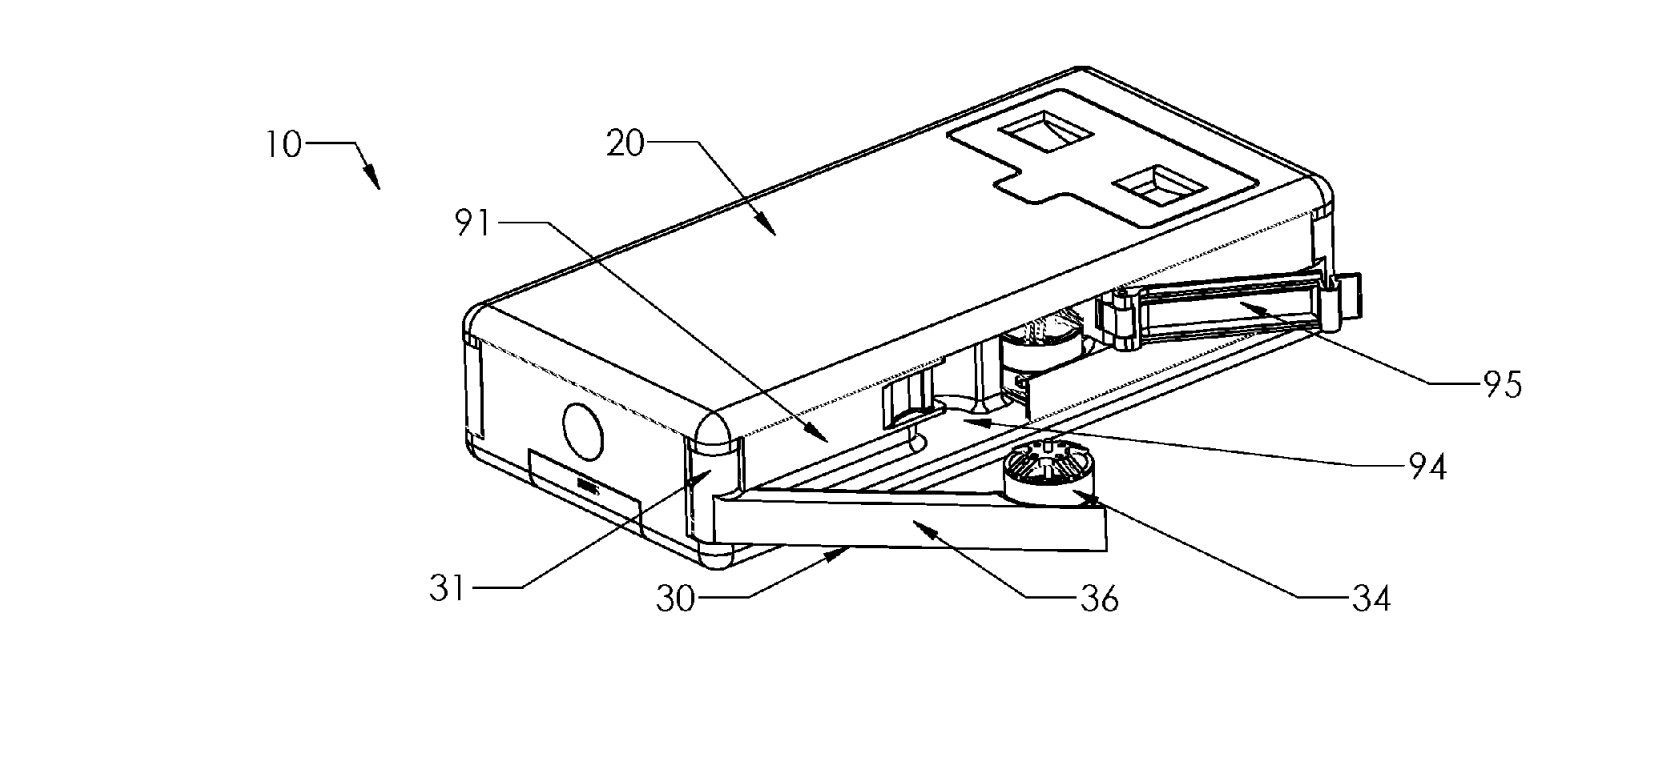 What will GoPro's drone look like? This patent provides